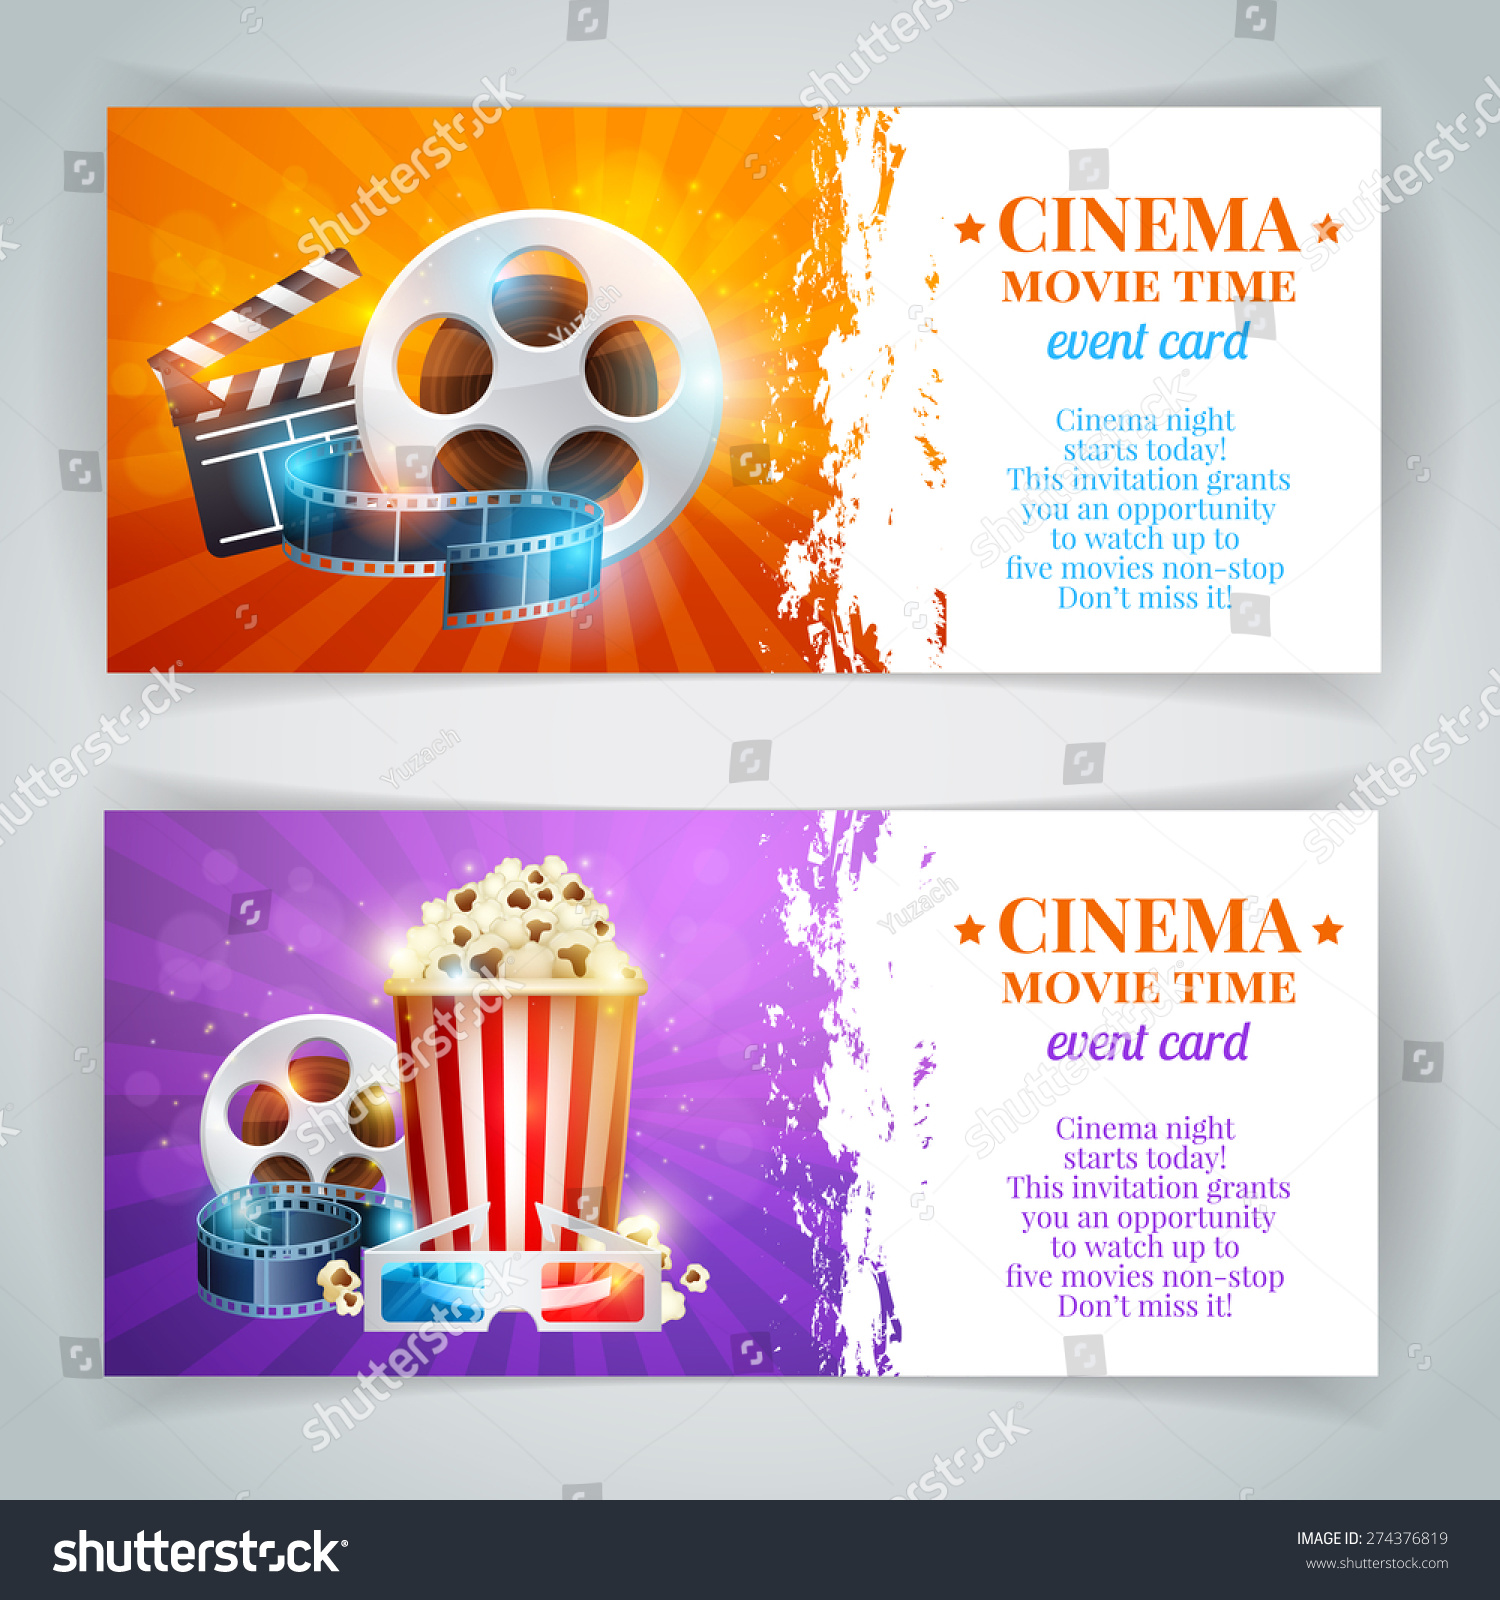 Wonderful 1099 Template Excel Tiny 1099 Template Word Clean 2014 Monthly Calendar Templates 2015 Template Calendar Young 3d Animator Resume Templates Dark3d Character Modeler Resume Realistic Cinema Movie Poster Template Film Stock Vector 274376819 ..